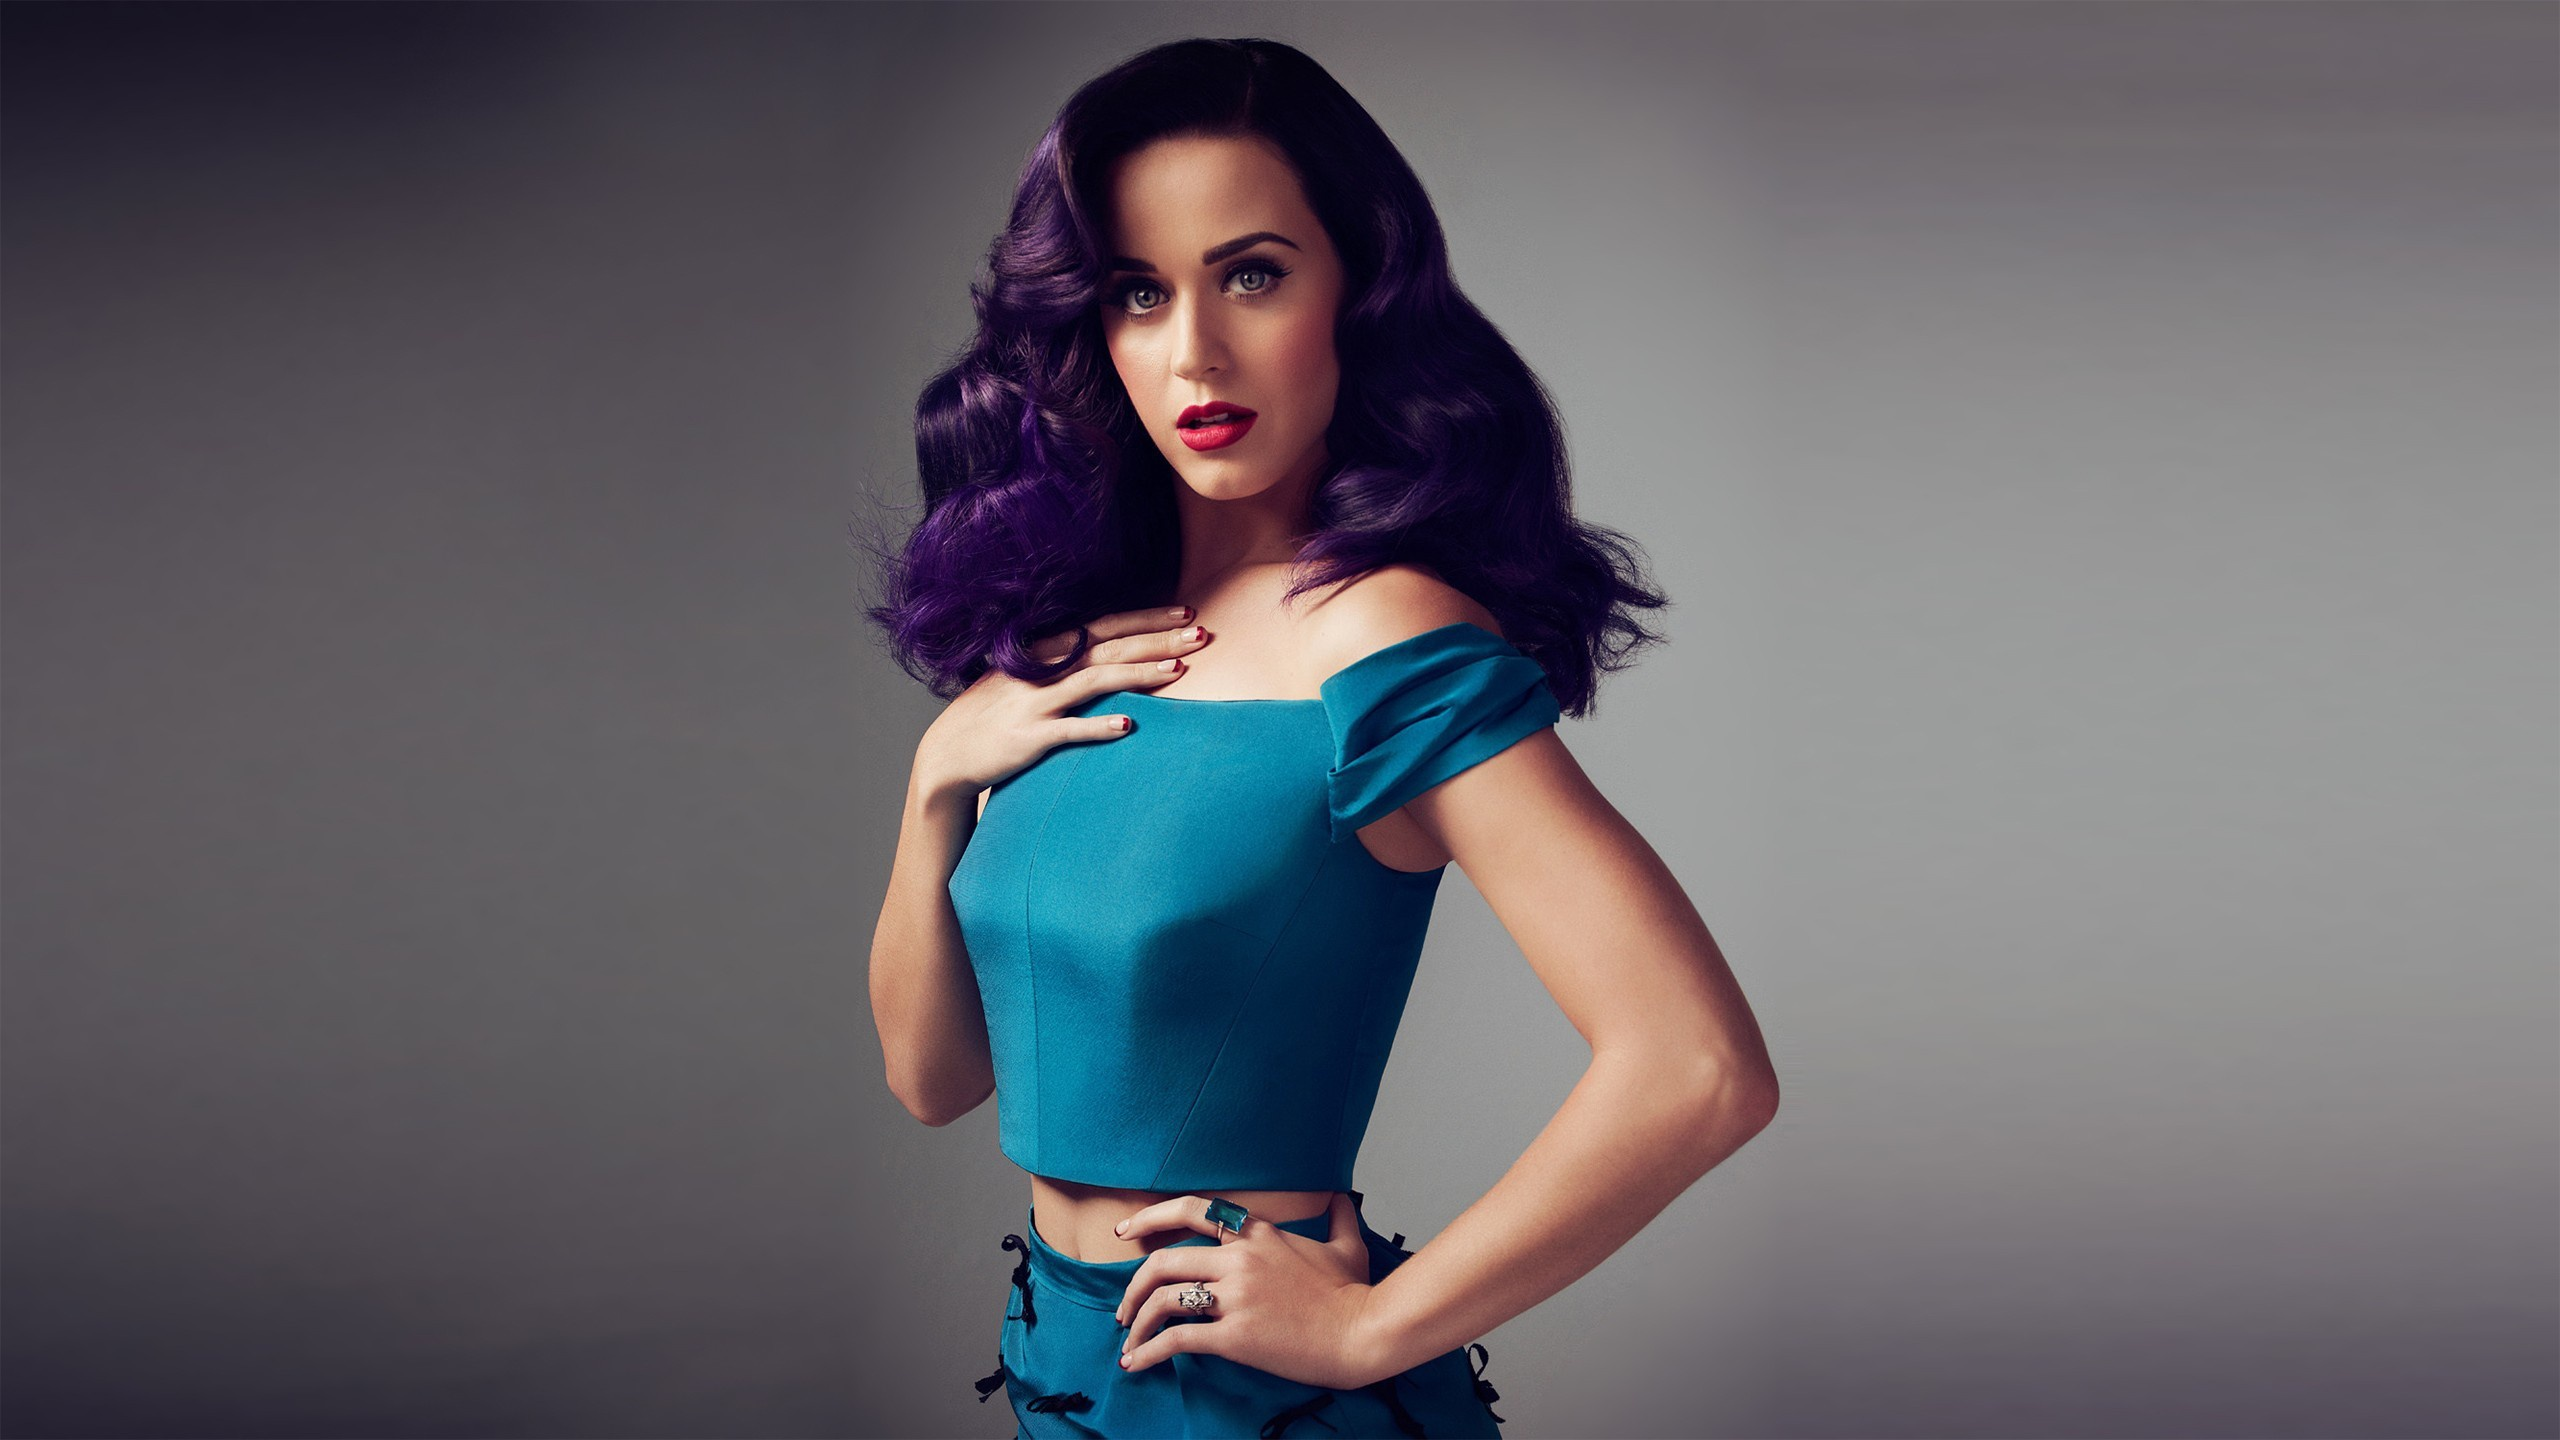 International Smile Katy Perry MP3 Download